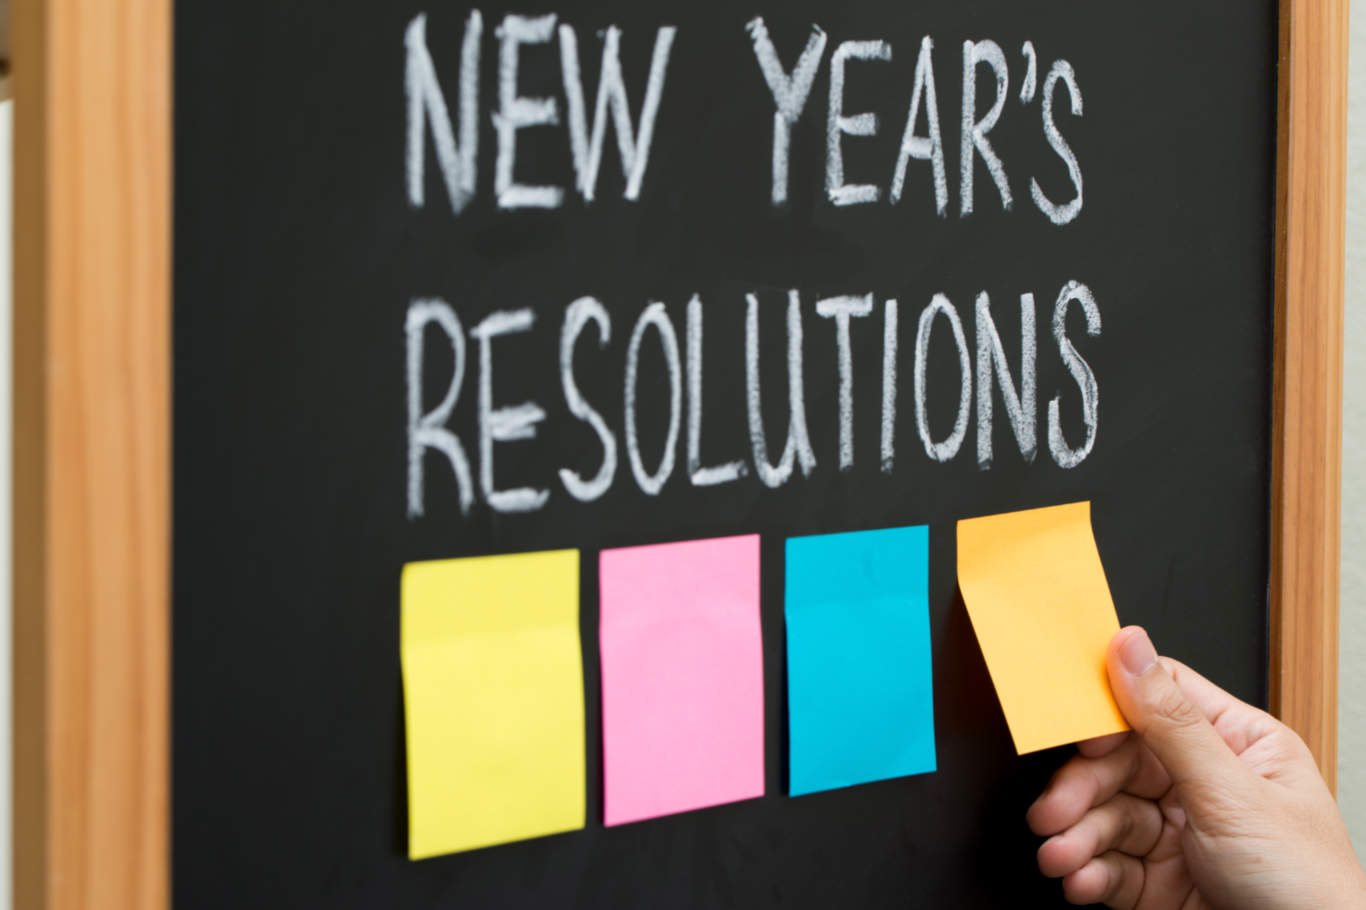 New year resolutions or goals with sticky notes on blackboard